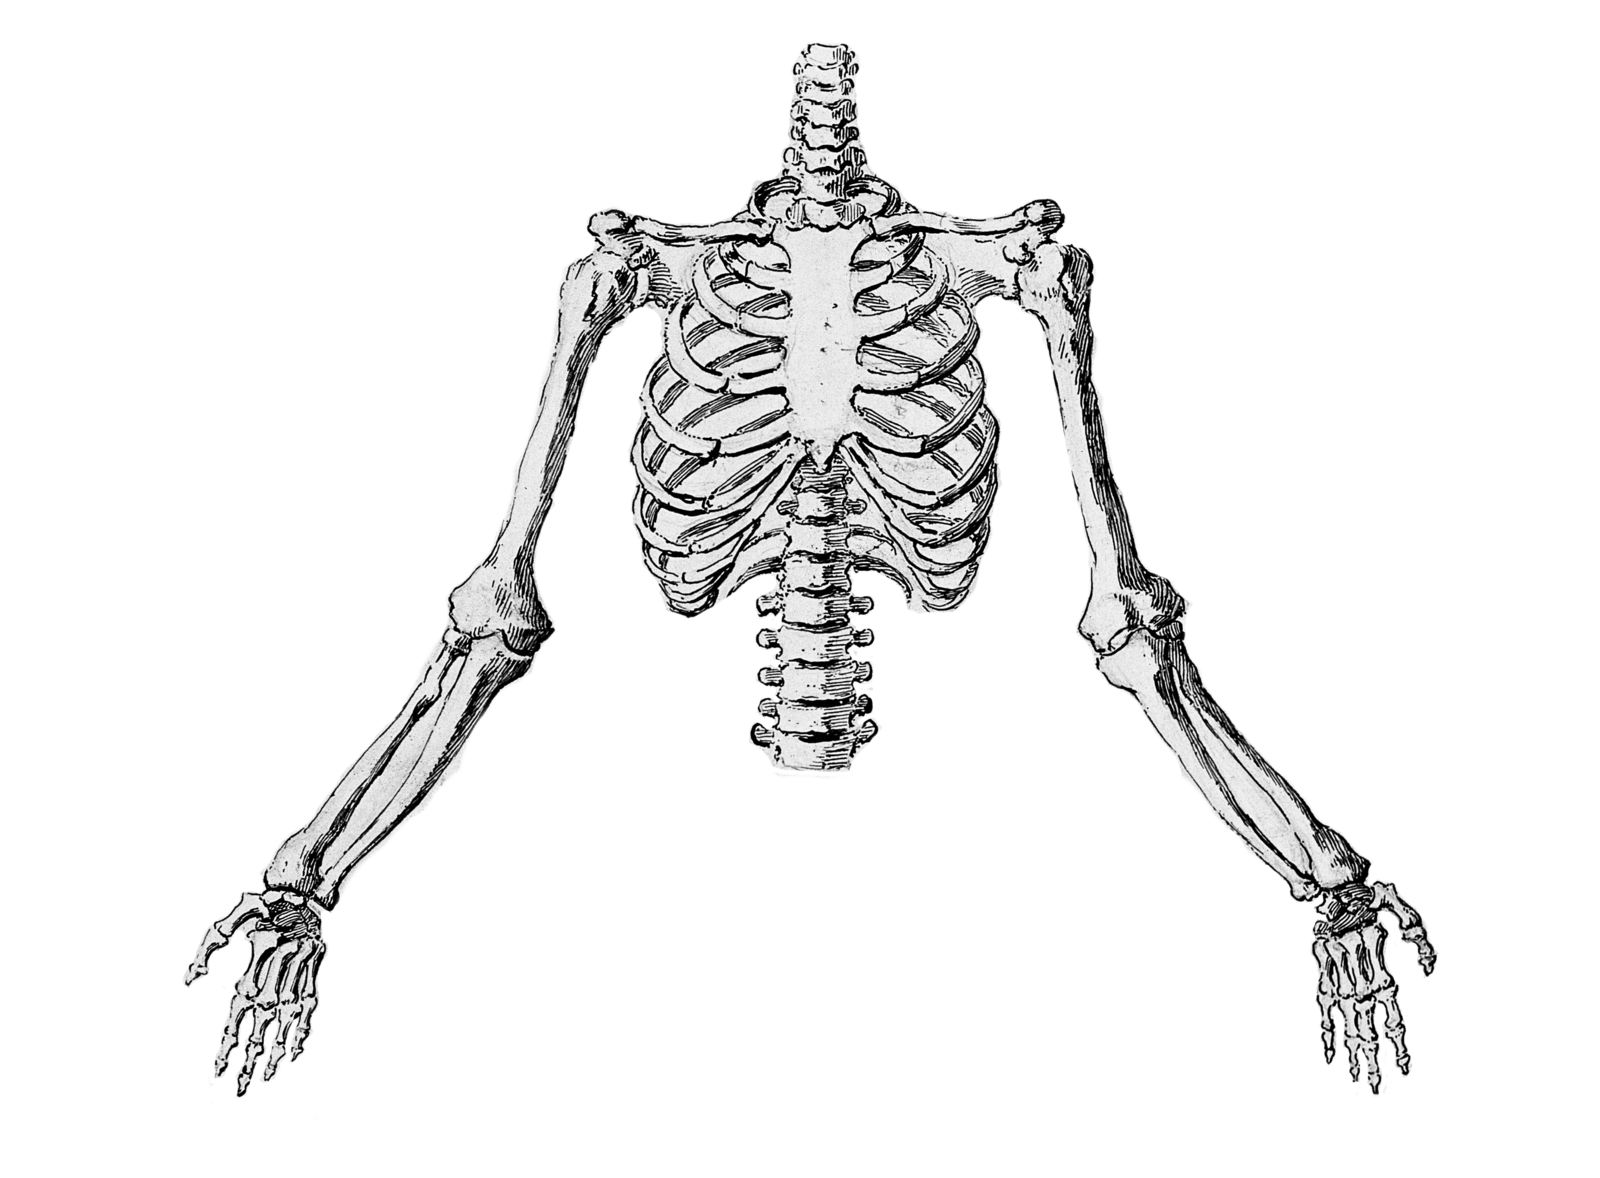 Xray drawing little. The bizarre convergence of